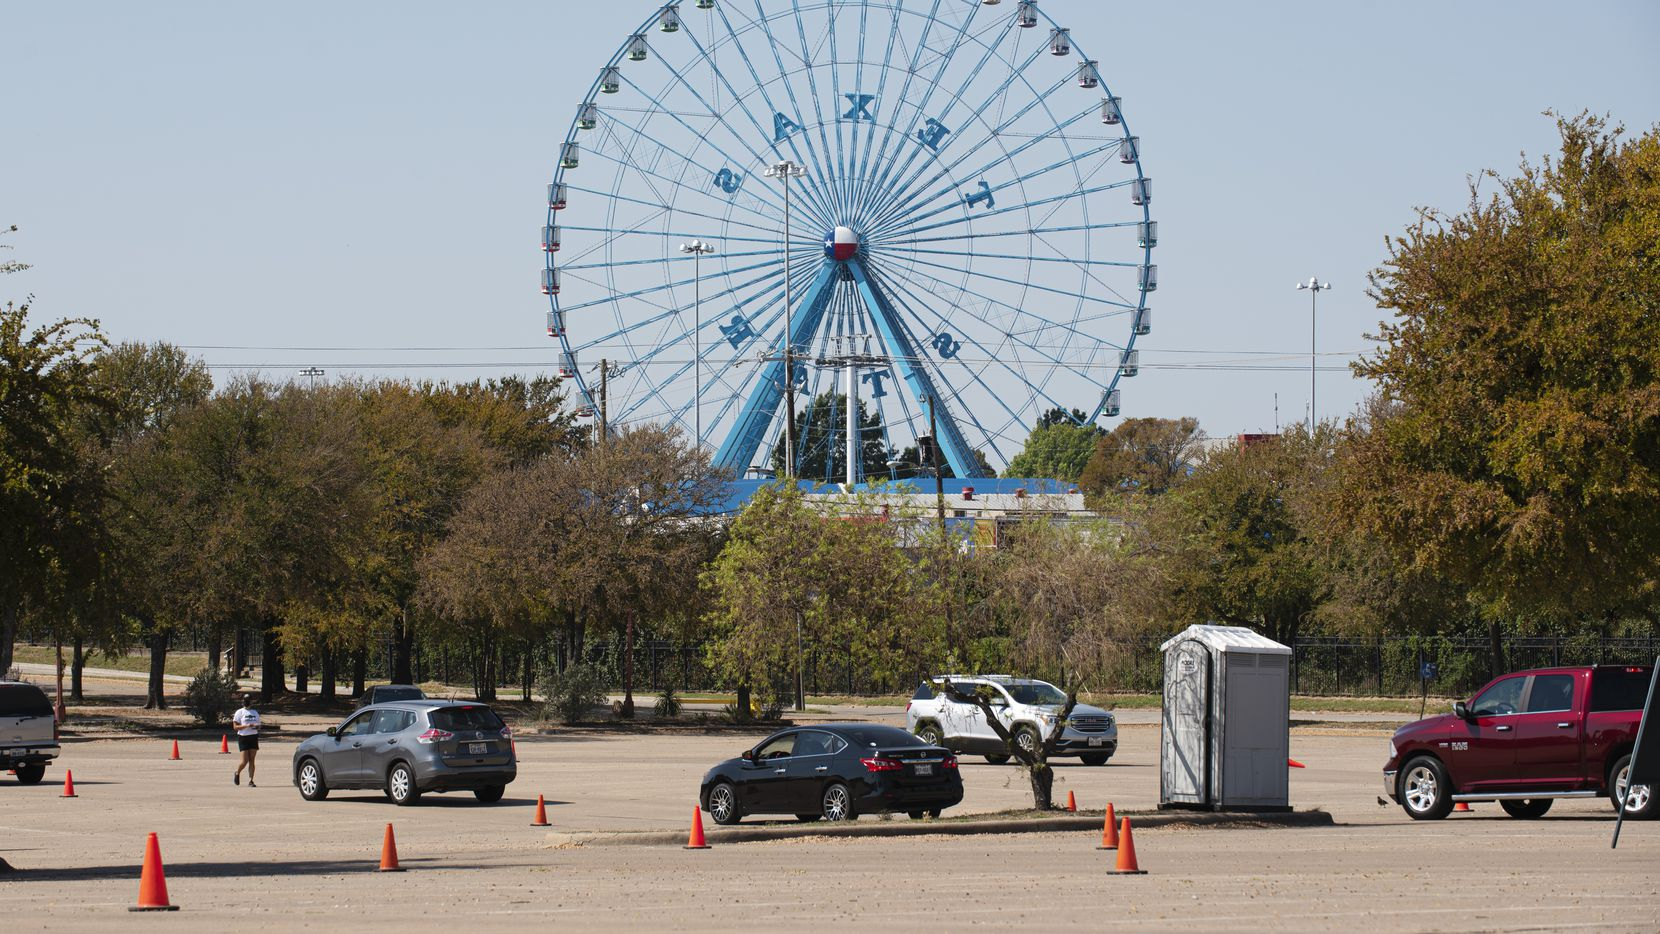 A few vehicles move towards the entrance of the State Fair of Texas Drive-Thru at Fair Park in Dallas, on Sunday, Oct. 11, 2020. To combat the large crowds and long lines, the State Fair of Texas has added additional staff and scanners to keep the lines at the entrance moving. Before 1pm on Sunday, State Fair staff scanned about 1,000 cars.